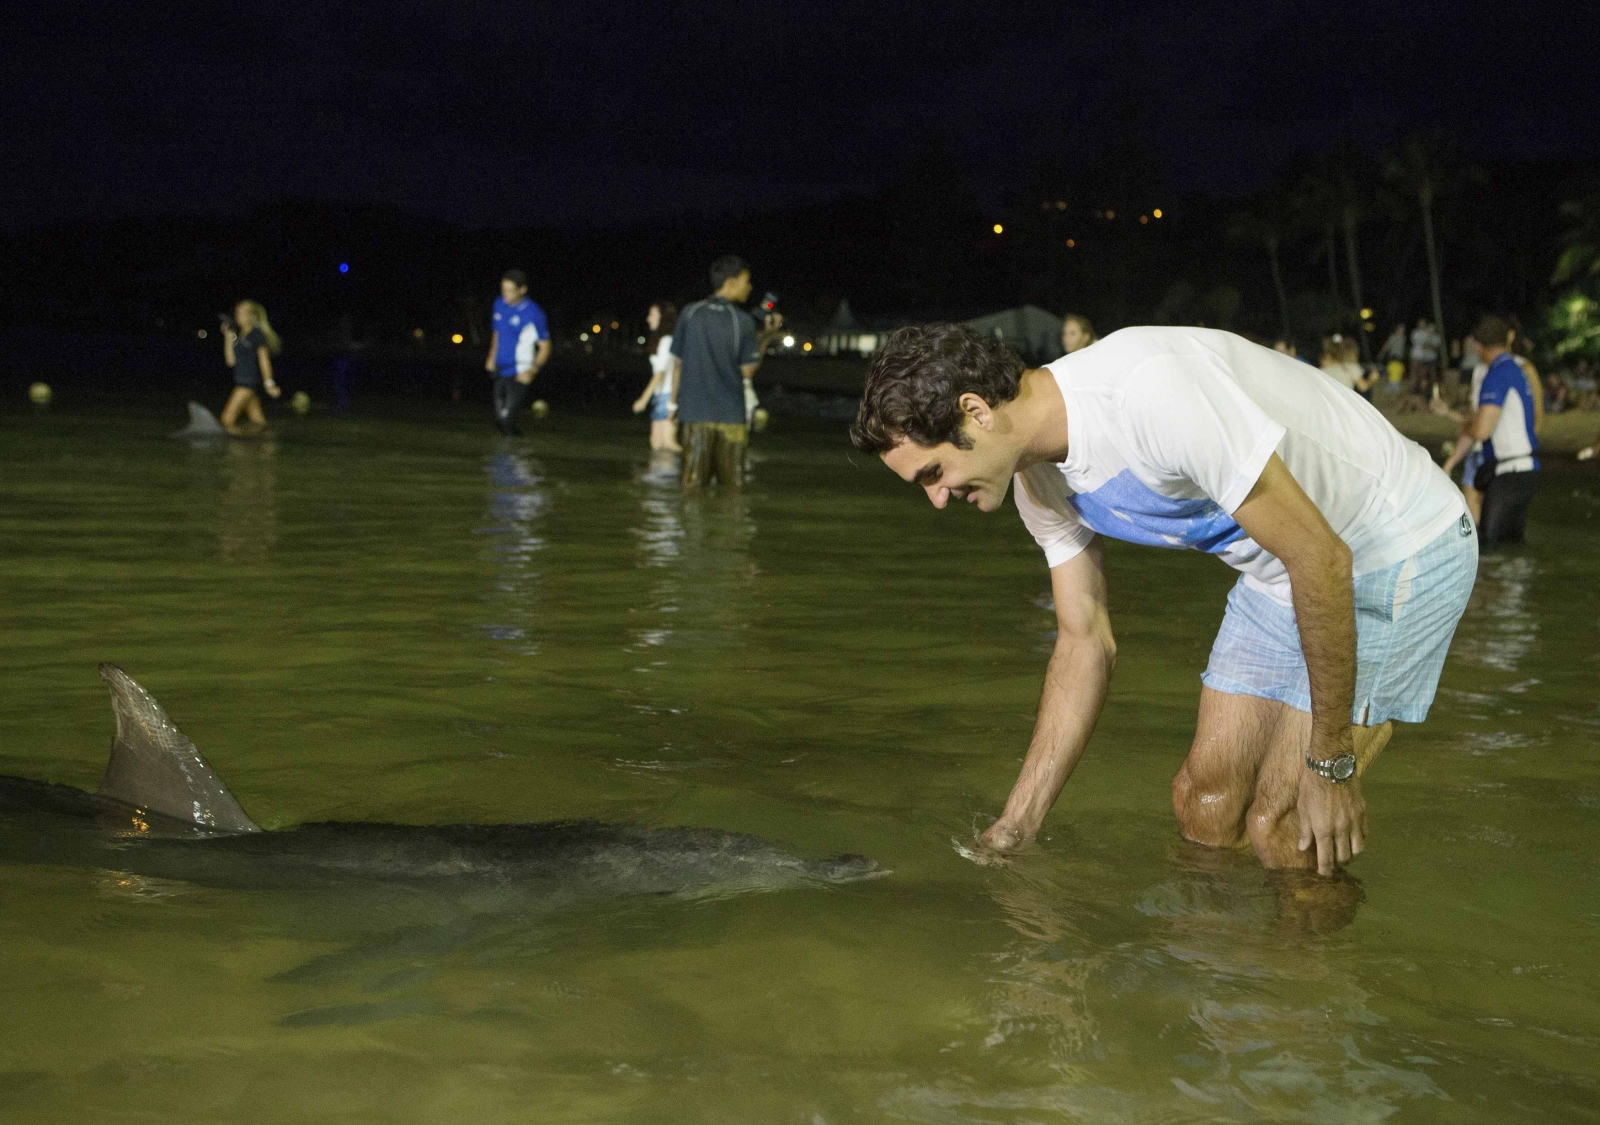 Federer chases dolphins and glory in Australia